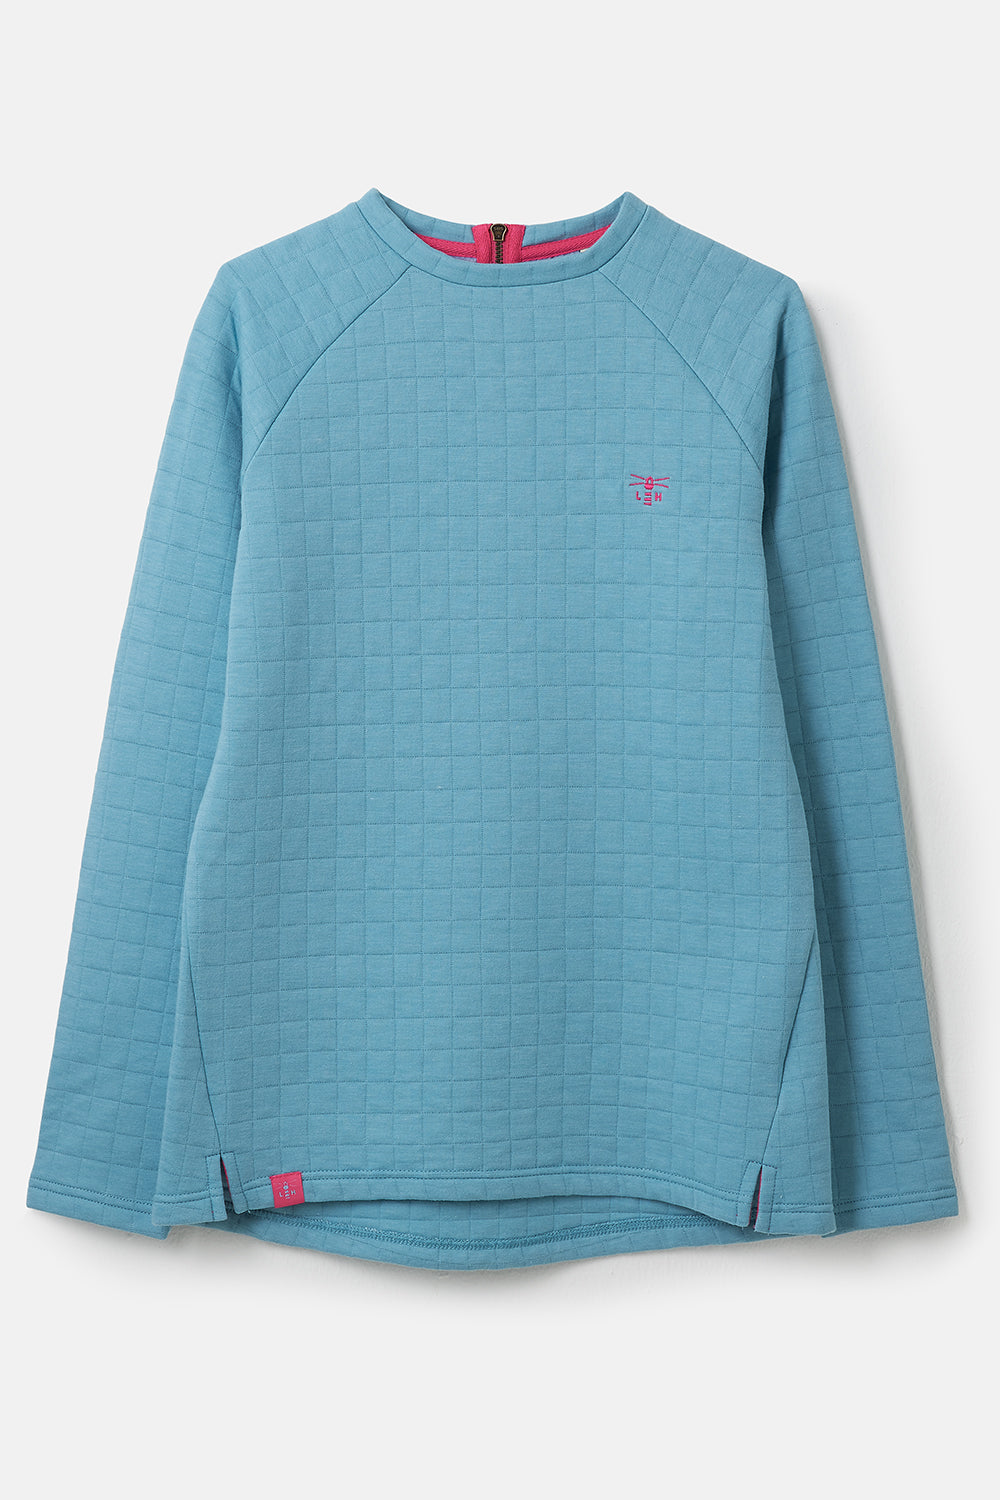 Lighthouse Billow - Womens Warm Jumper - Blue